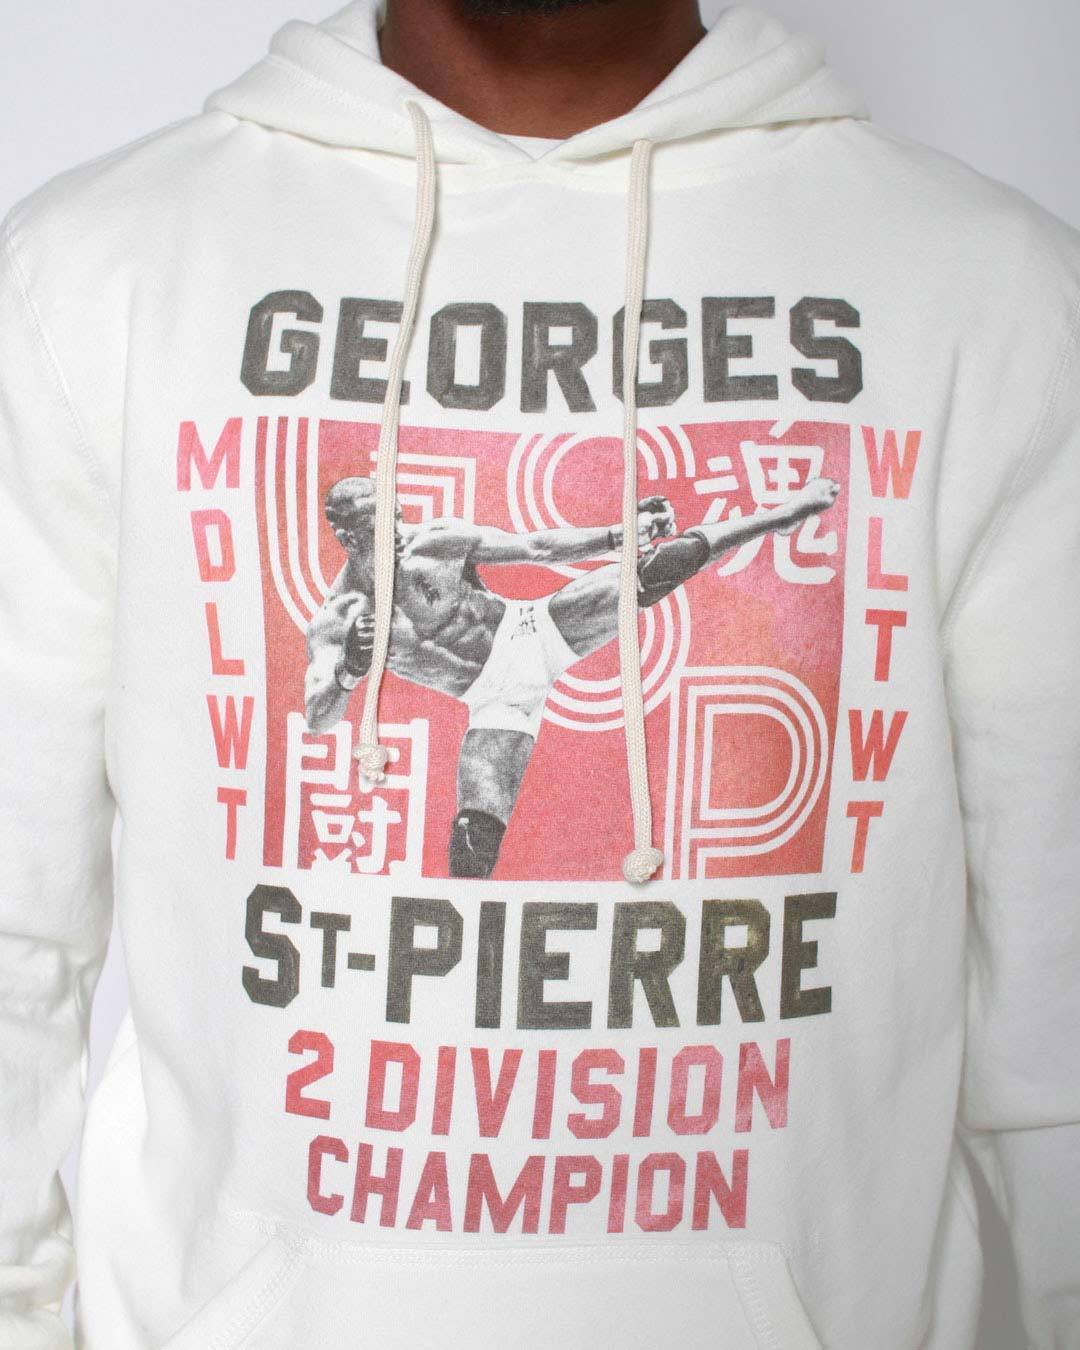 GSP 2 Division Champ Photo Pullover Hoody